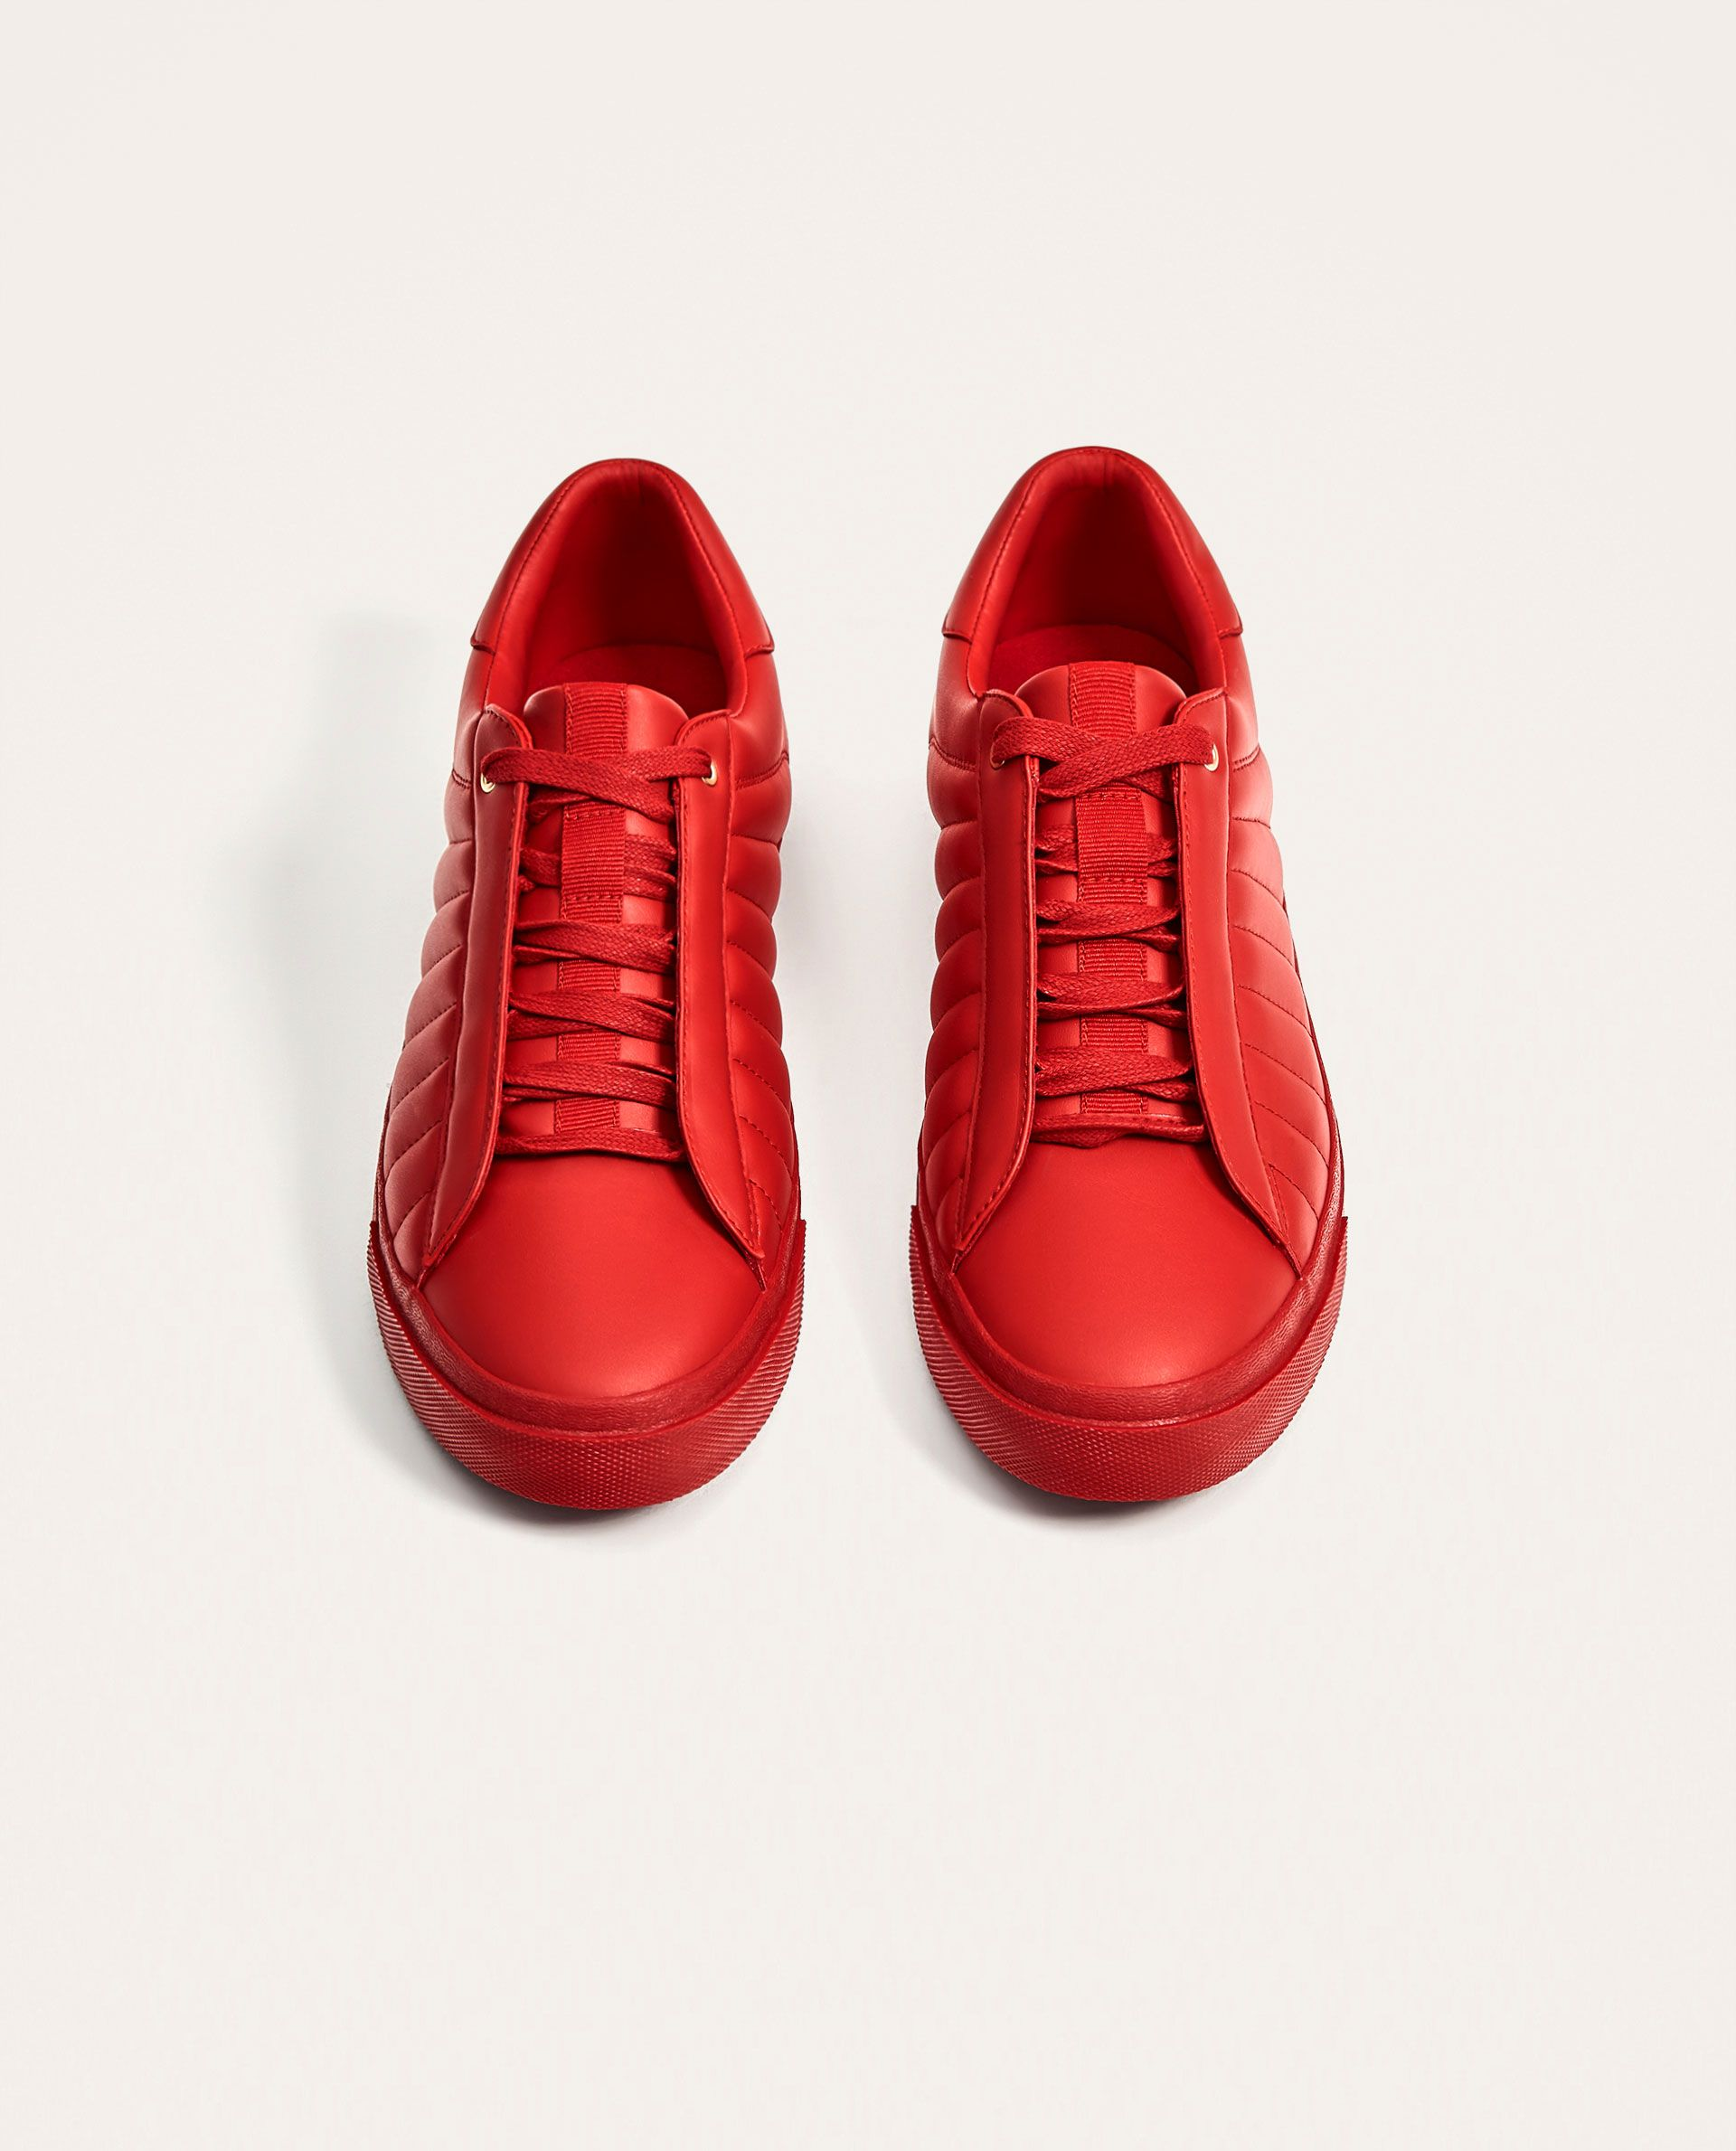 95eb4f201a3b RED QUILTED SNEAKERS from Zara Snicker Shoes